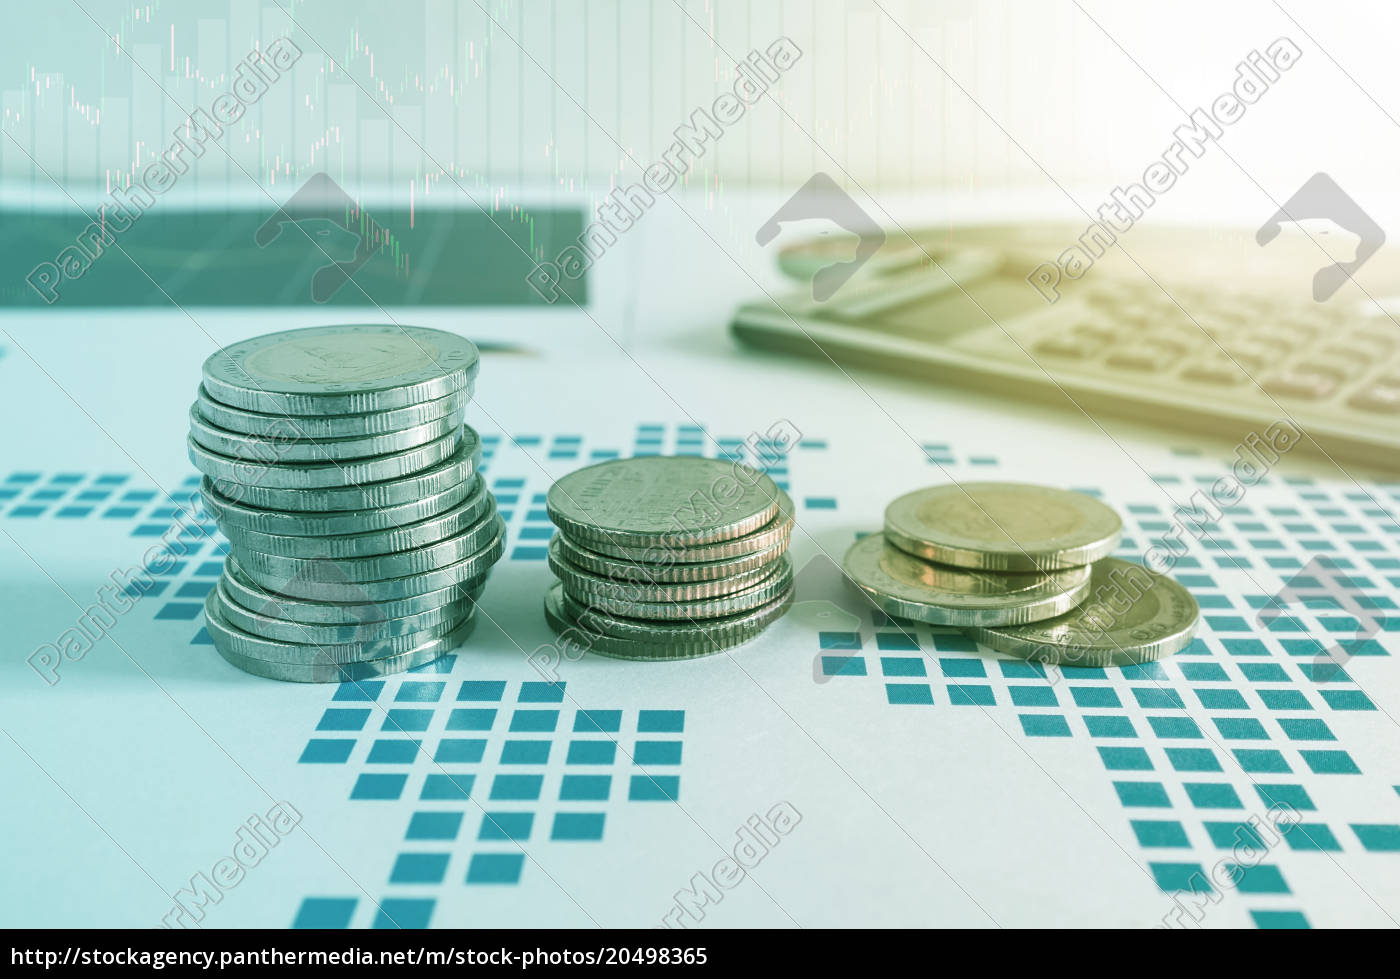 coin, stacks, and, calculator, on, paper - 20498365